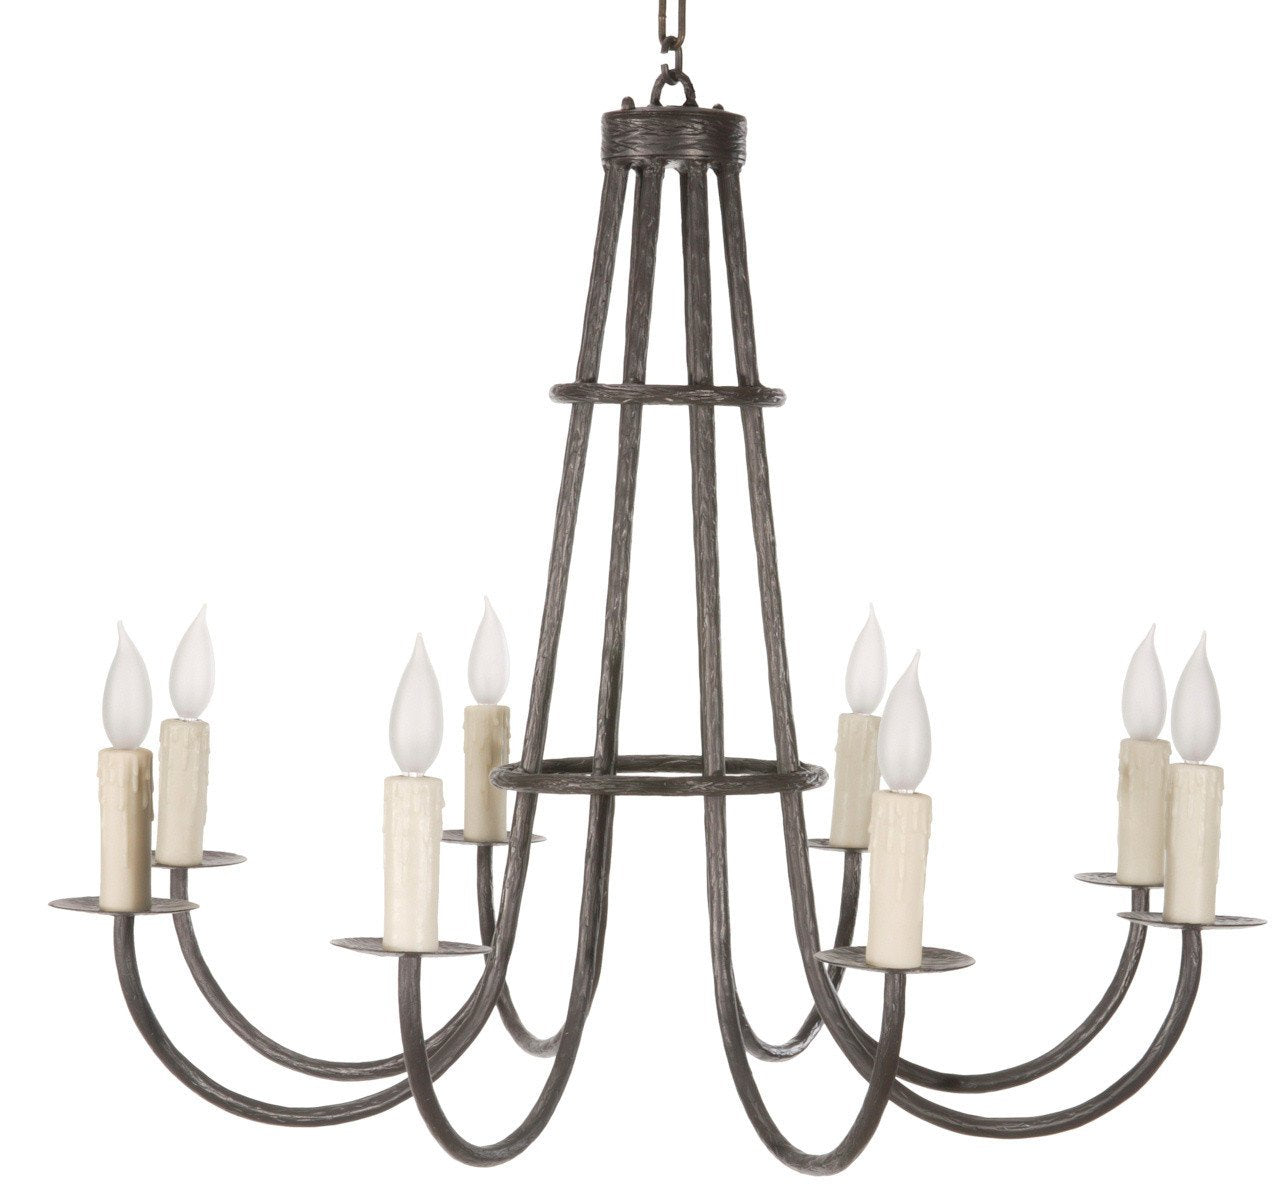 Stone County Arm Chandelier Cedarvale 4343